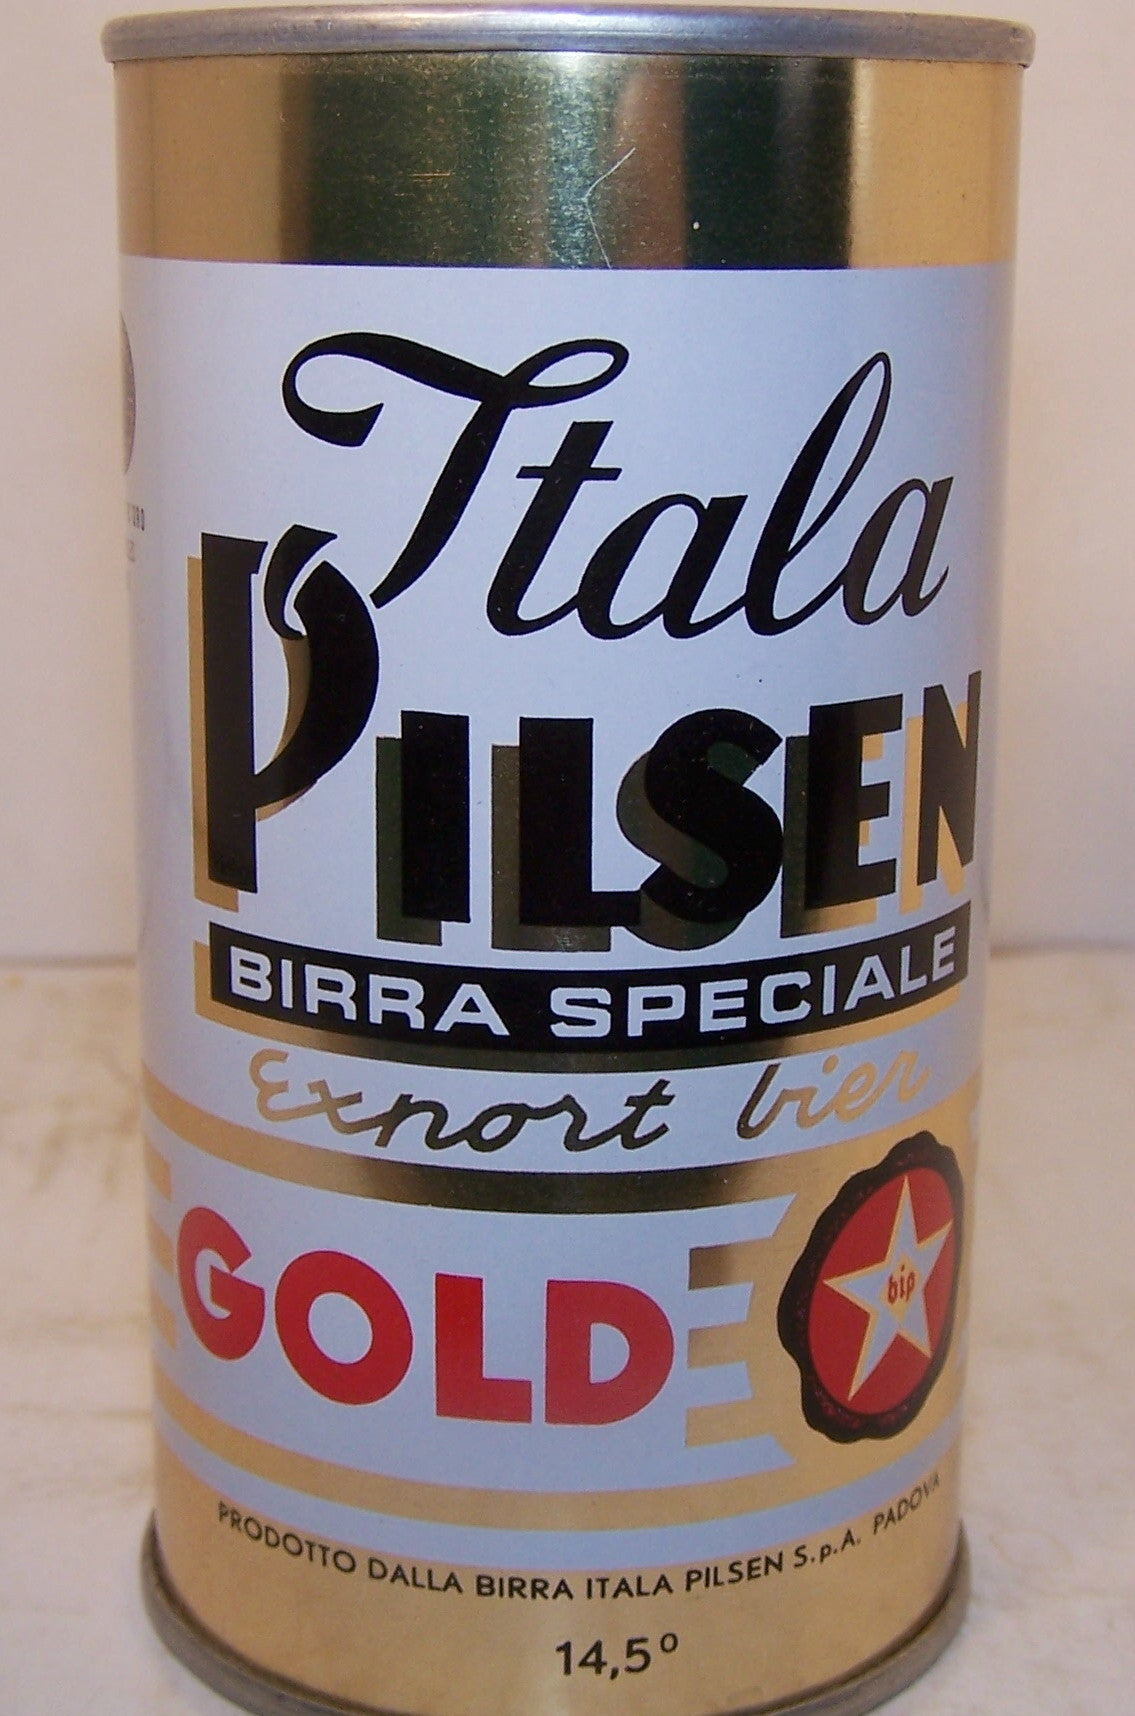 Itala Pilsen export Bier, can is rolled, Grade A1+ Sold on 10/11/15